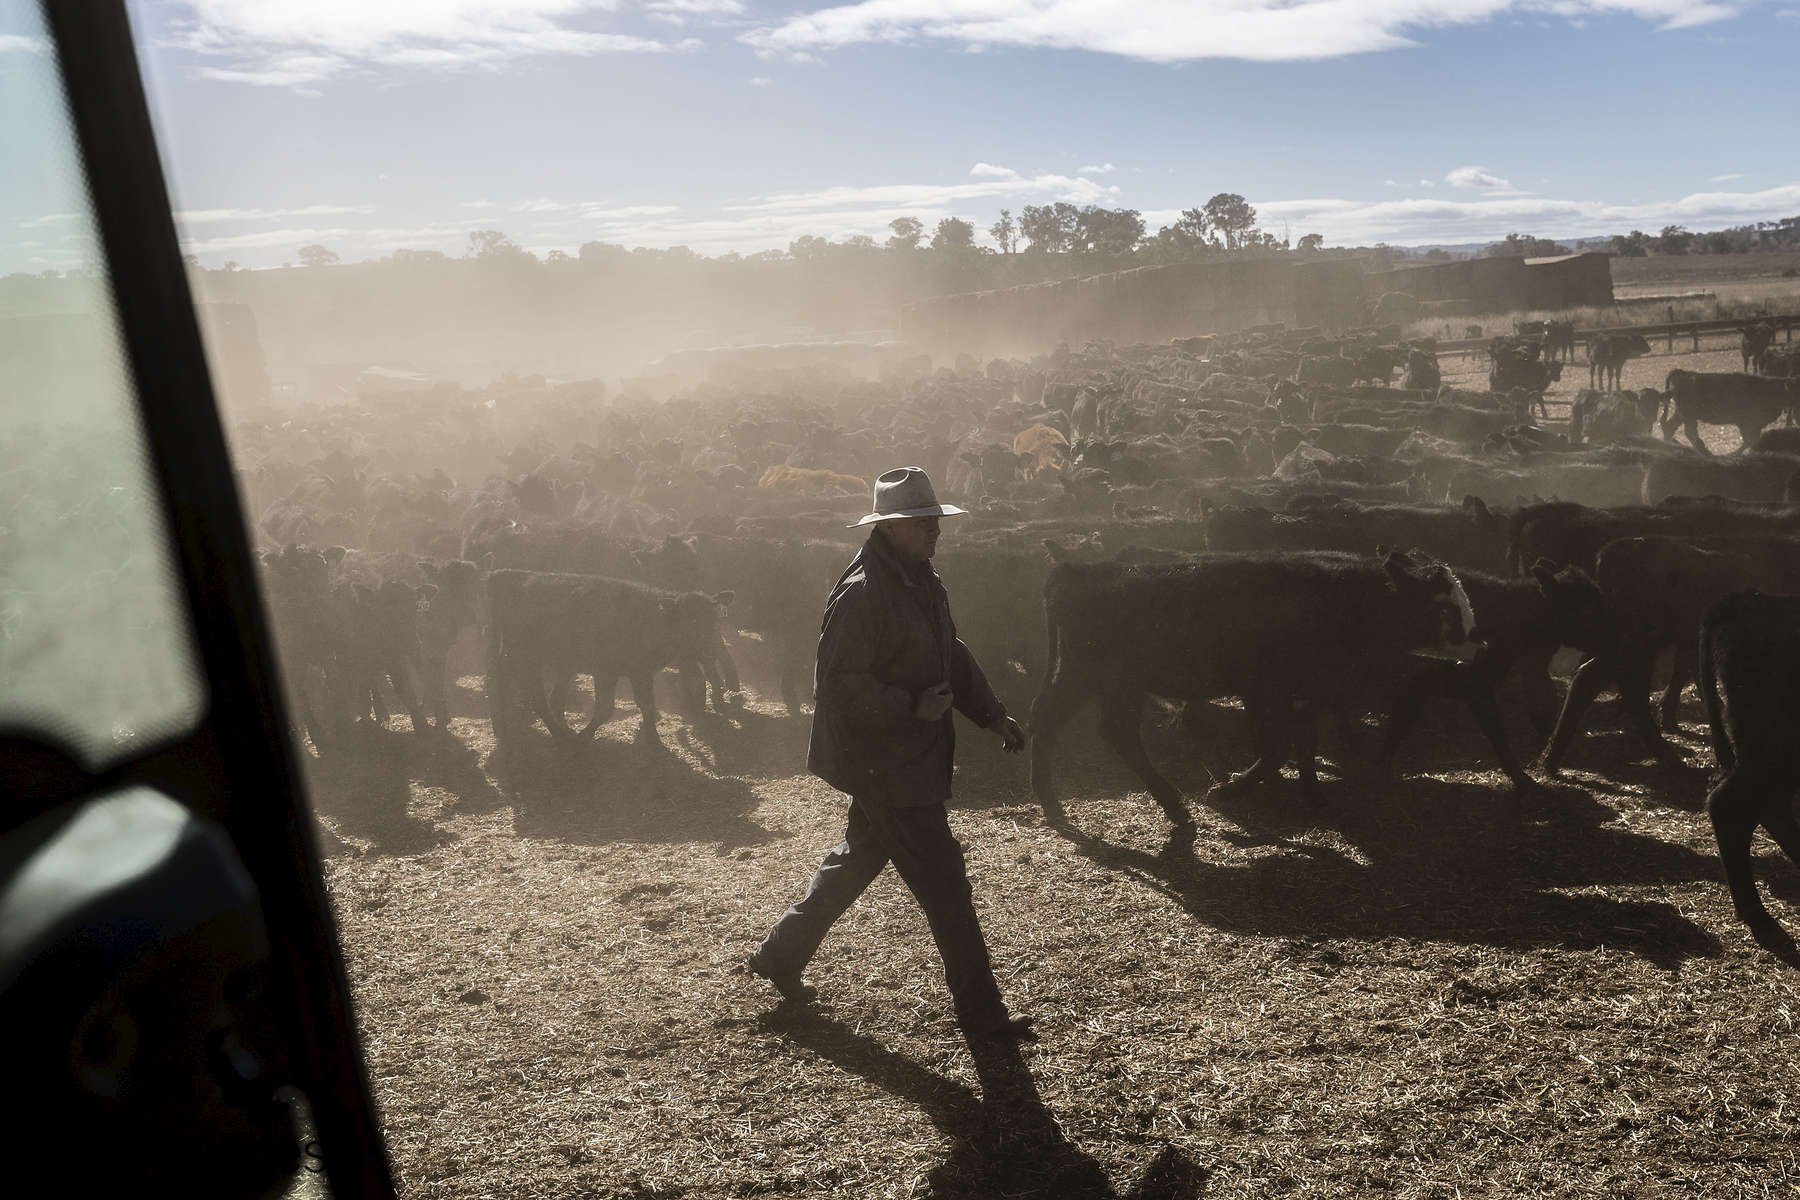 COONABARABRAN , NEW SOUTH WALES - JUNE 19:  Ambrose Doolan works with his wife Lisa on their propery outside Coonabrabran.  In the Central Western region of New South Wales, Australia, farmers continue to battle a crippling drought which many locals are calling the worst since 1902. In Warrumbungle Shire, where sharp peaks fall away to once fertile farmland the small town of Coonabarabran is running out of water. The town dam is down to just 23% capacity, forcing residents to live with level six water restrictions. The New South Wales State government recently approved an emergency drought relief package of A$600m, of which at least A$250m is allocated for low interest loans to assist eligible farm businesses to recover. The package has been welcomed, though in the words of a local farmer {quote}it barely touches the sides{quote}. Now with the real prospect of a dry El-Nino weather pattern hitting the state in Spring, the longer term outlook for rain here is dire. June 19, 2018 in Coonabarabran, Australia.  (Photo by Brook Mitchell/Getty Images)